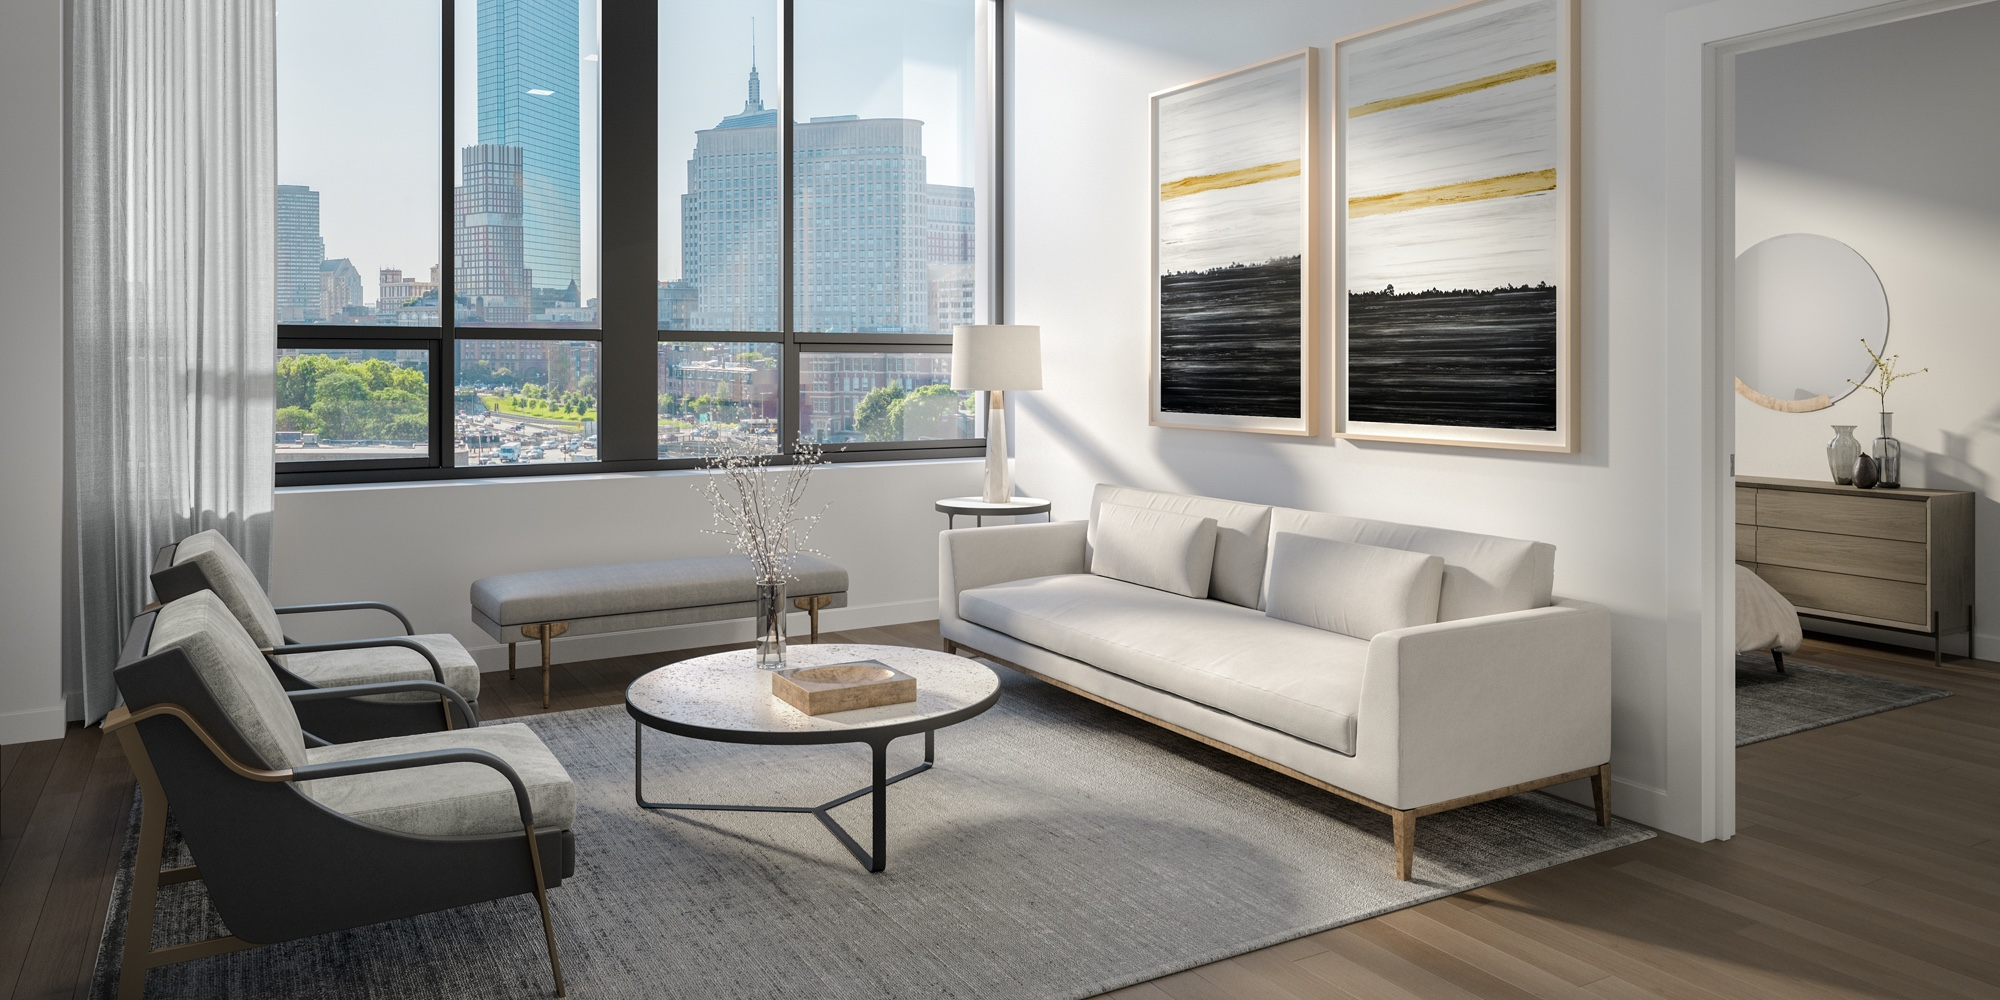 Living room of a 100 Shawmut unit with light-colored furniture and a view of downtown Boston